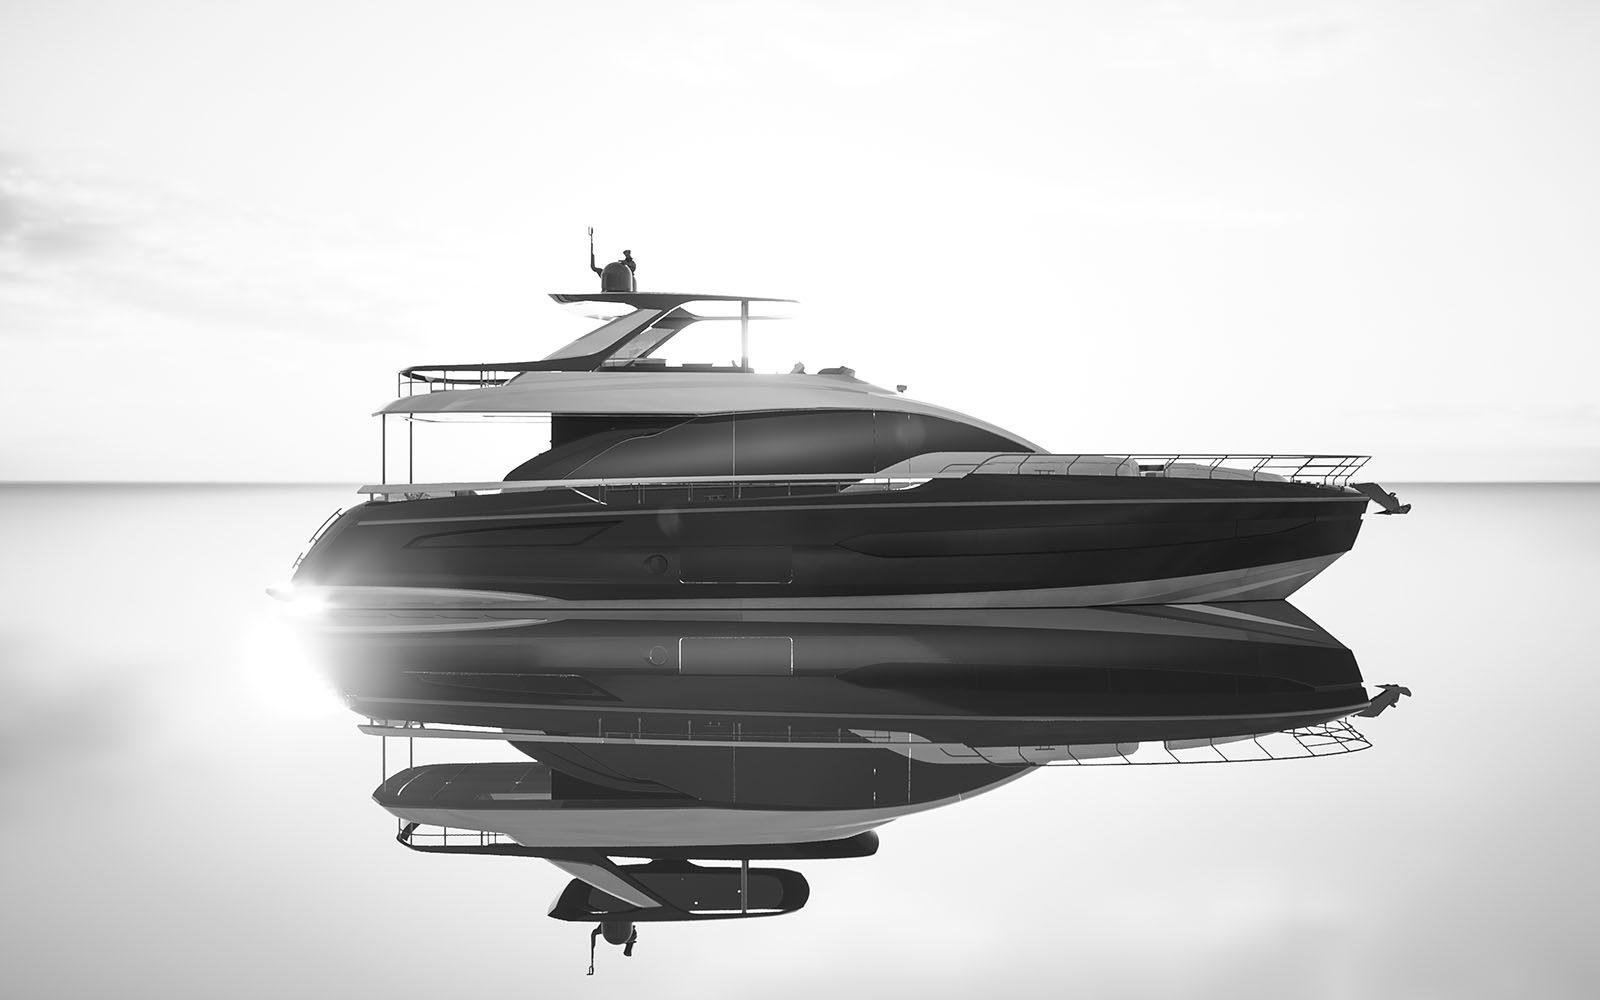 azimut 78 flybrigde carbon-tech - boat shopping